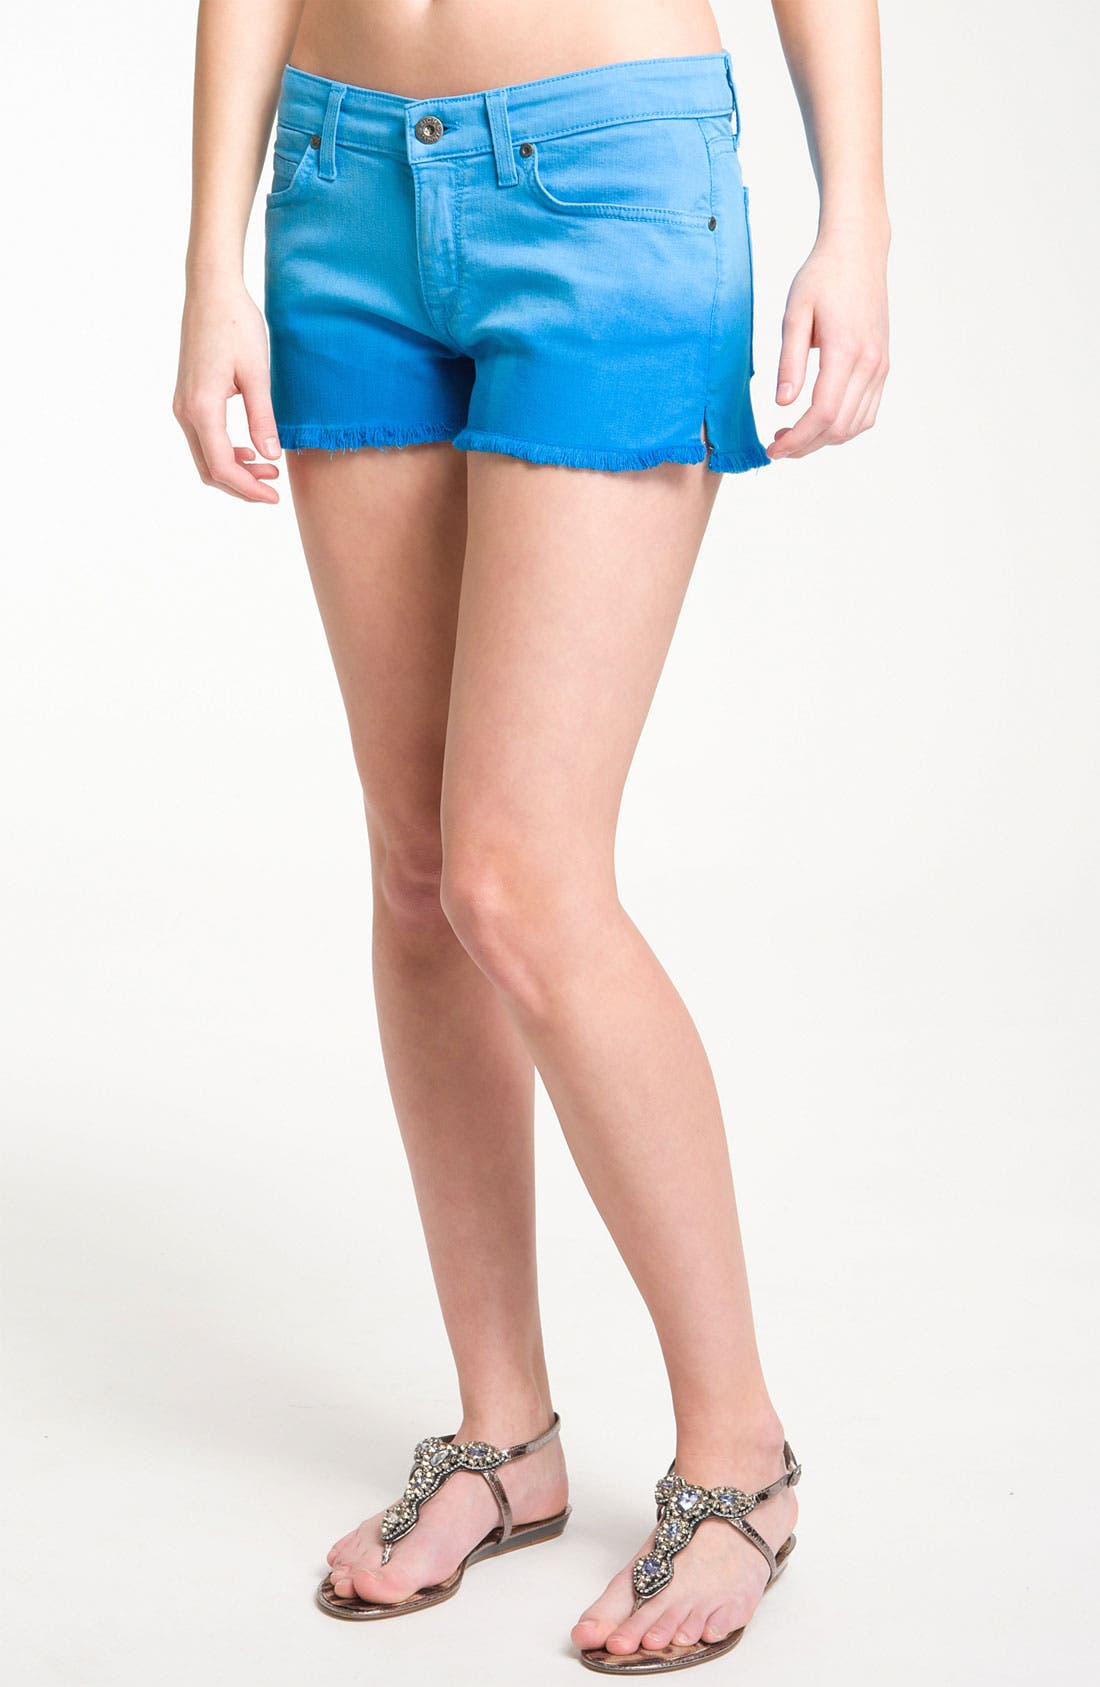 Main Image - Rich & Skinny 'Venice' Ombré Denim Cutoff Shorts (Dipped Blue)